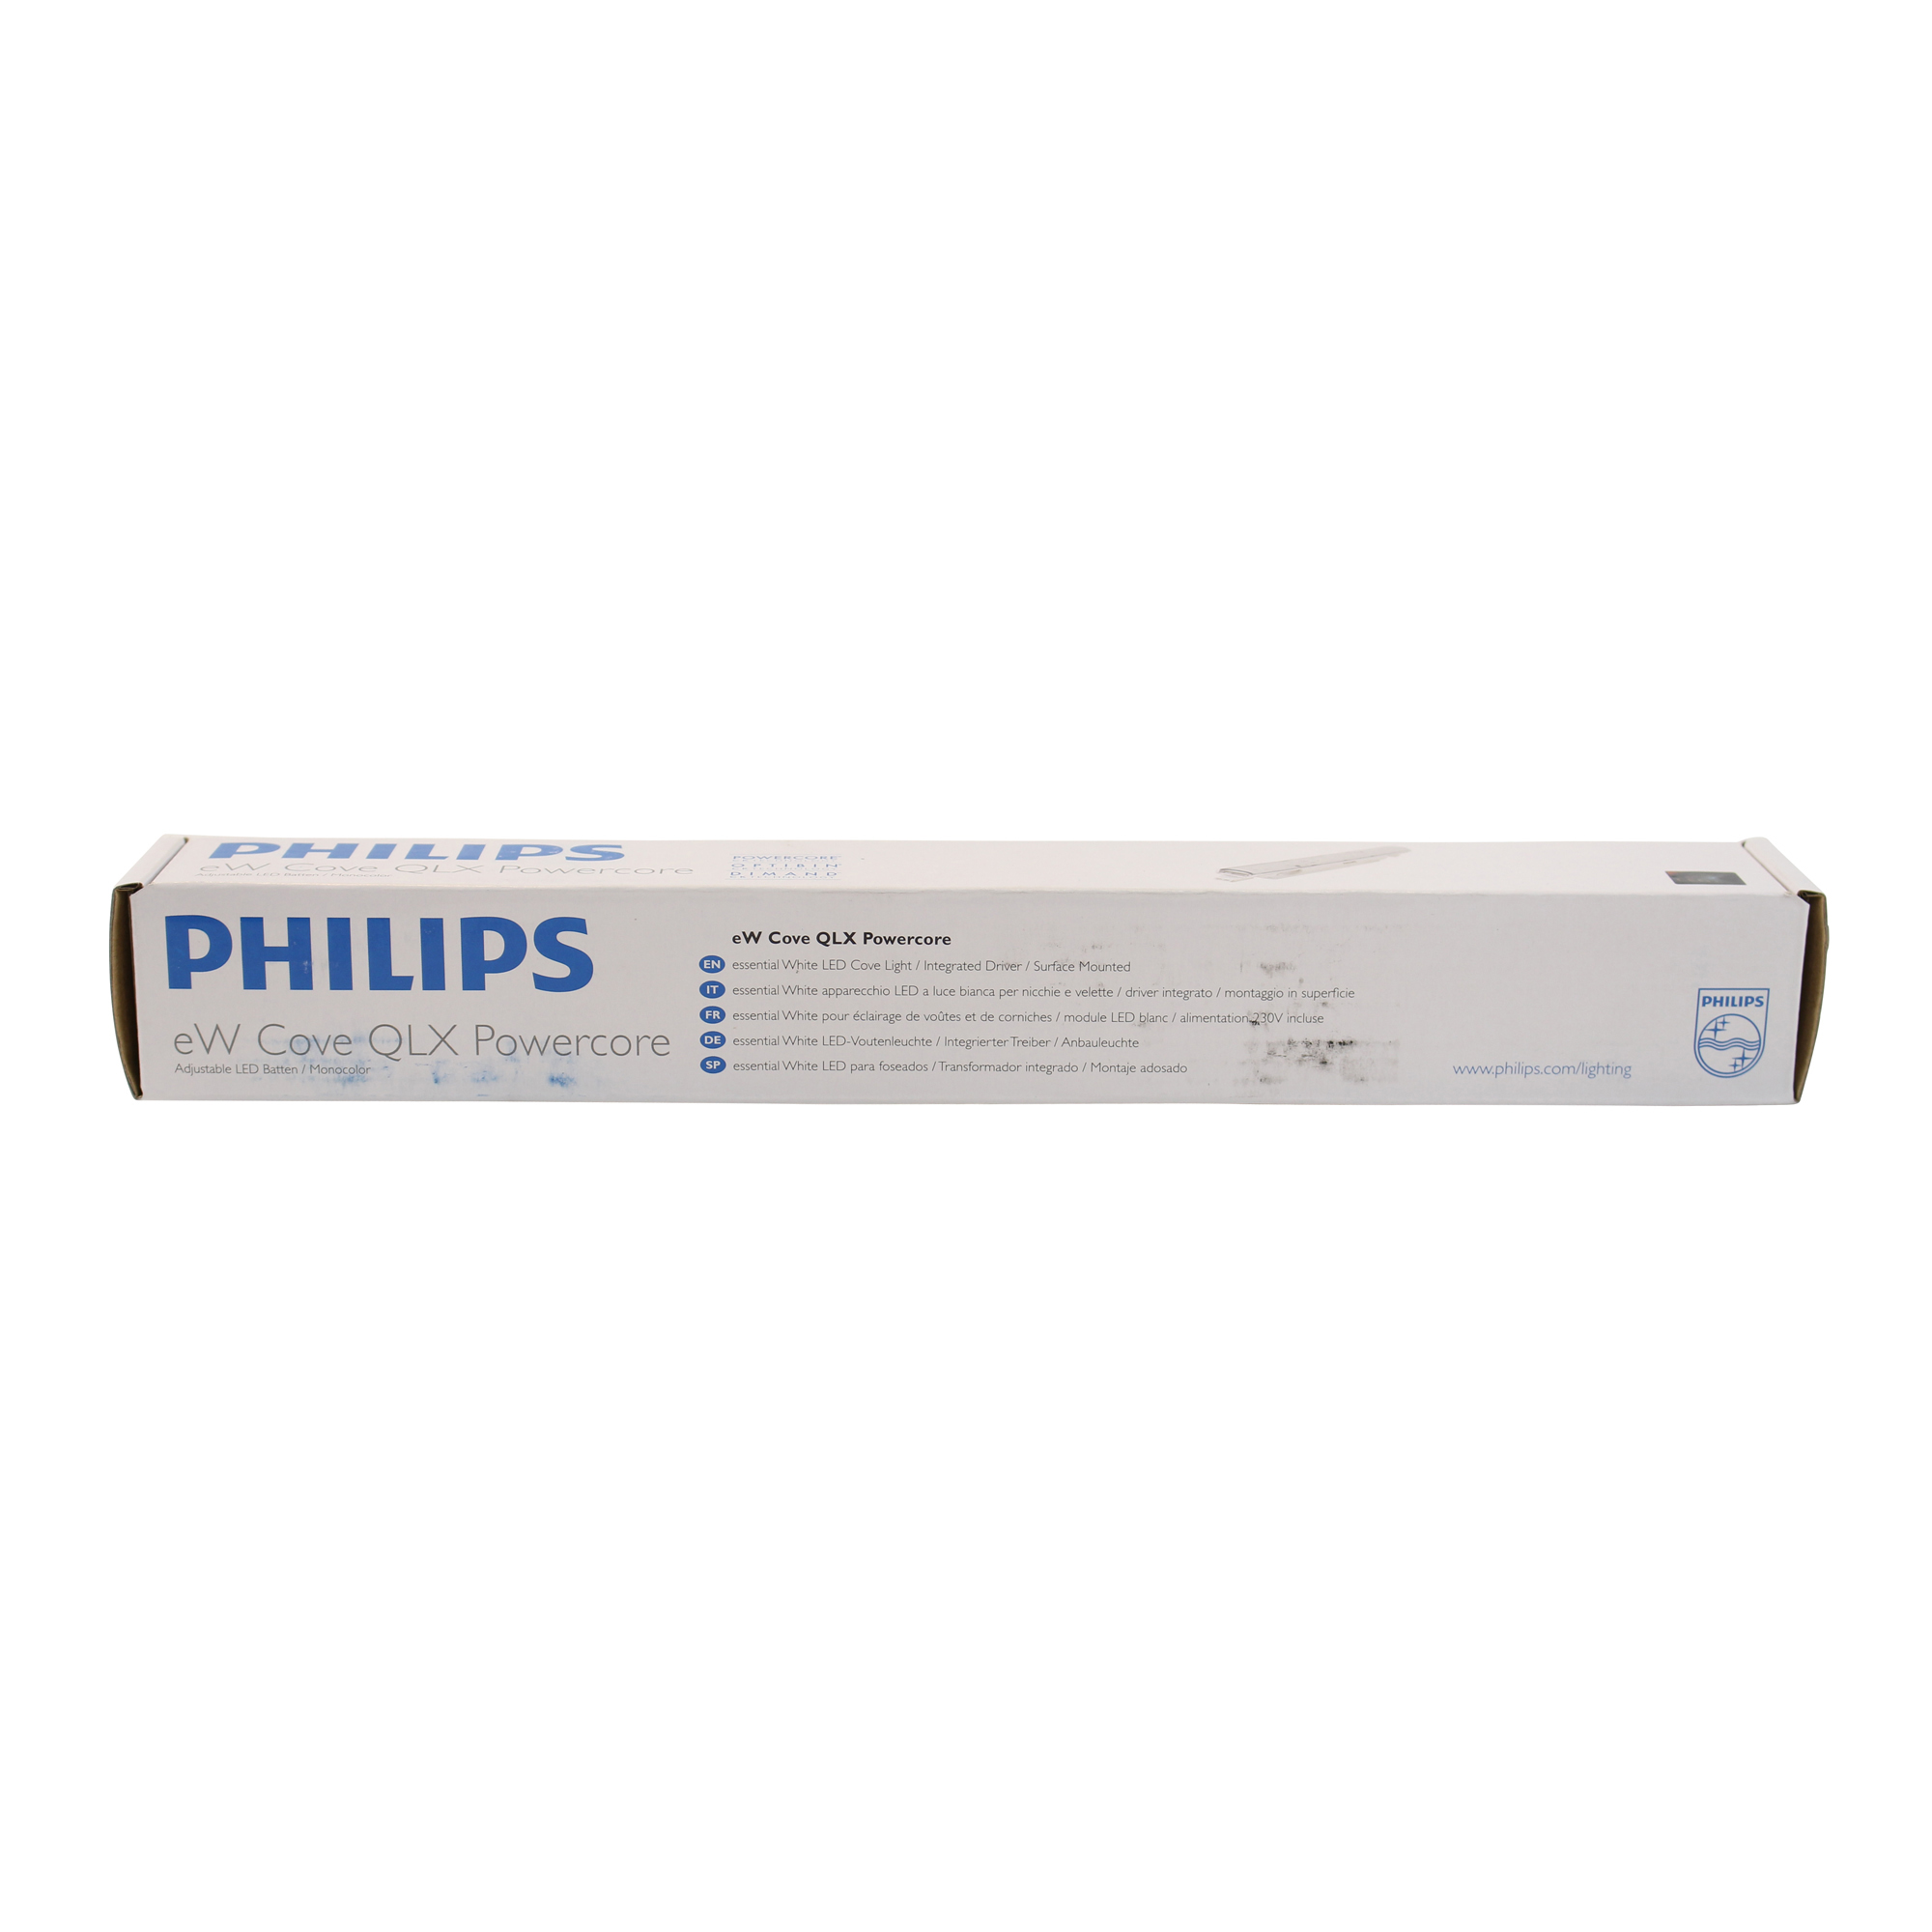 Eclairage Led Philips Details About Philips Color Kinetics 523 000004 19 Ew Cove Qlx Pc Led Light 4k 220 240v 12